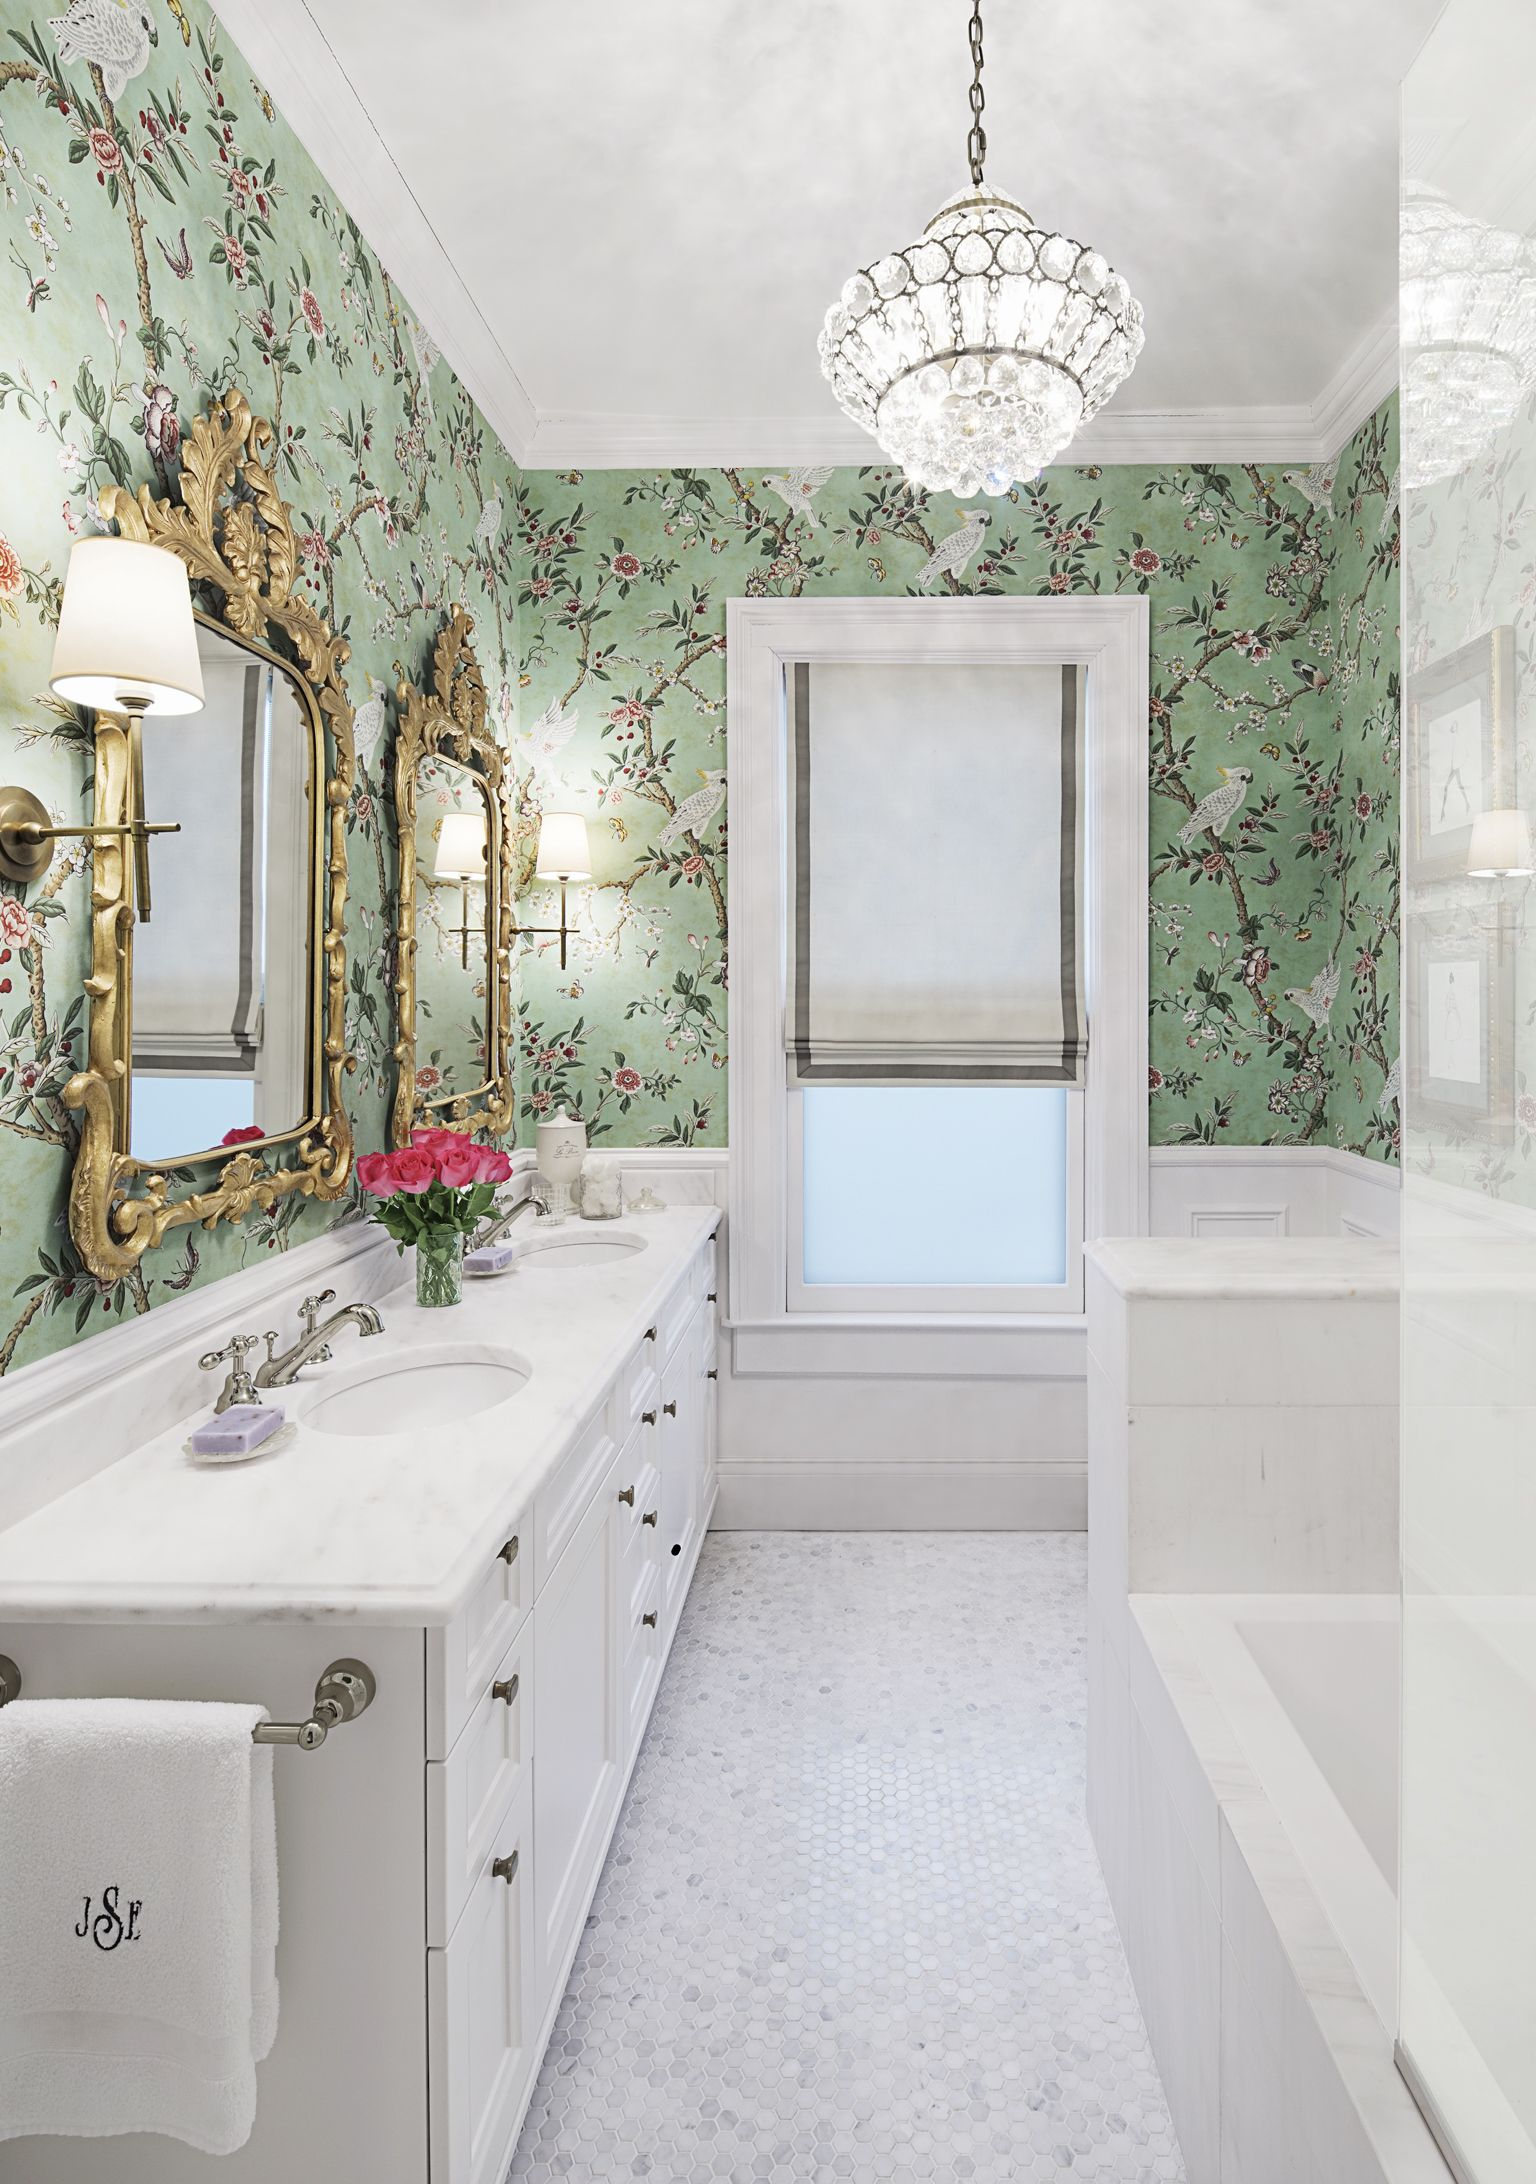 House Beautiful - BATH OF THE MONTH: Grown-Up Glamour  Glamorous